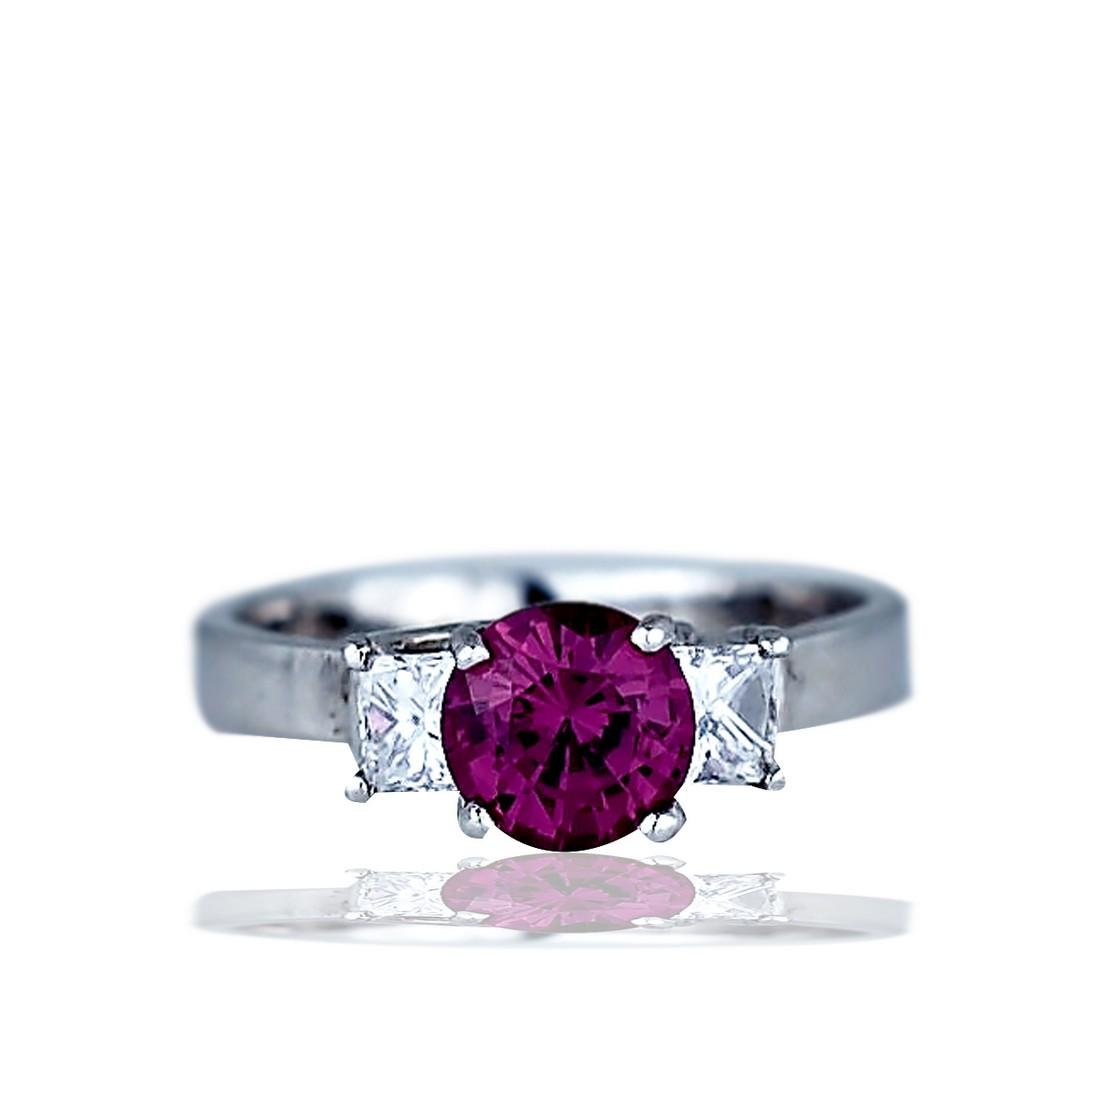 1.98 TCW Tourmaline and Diamond 3 Stone, 14 Karat